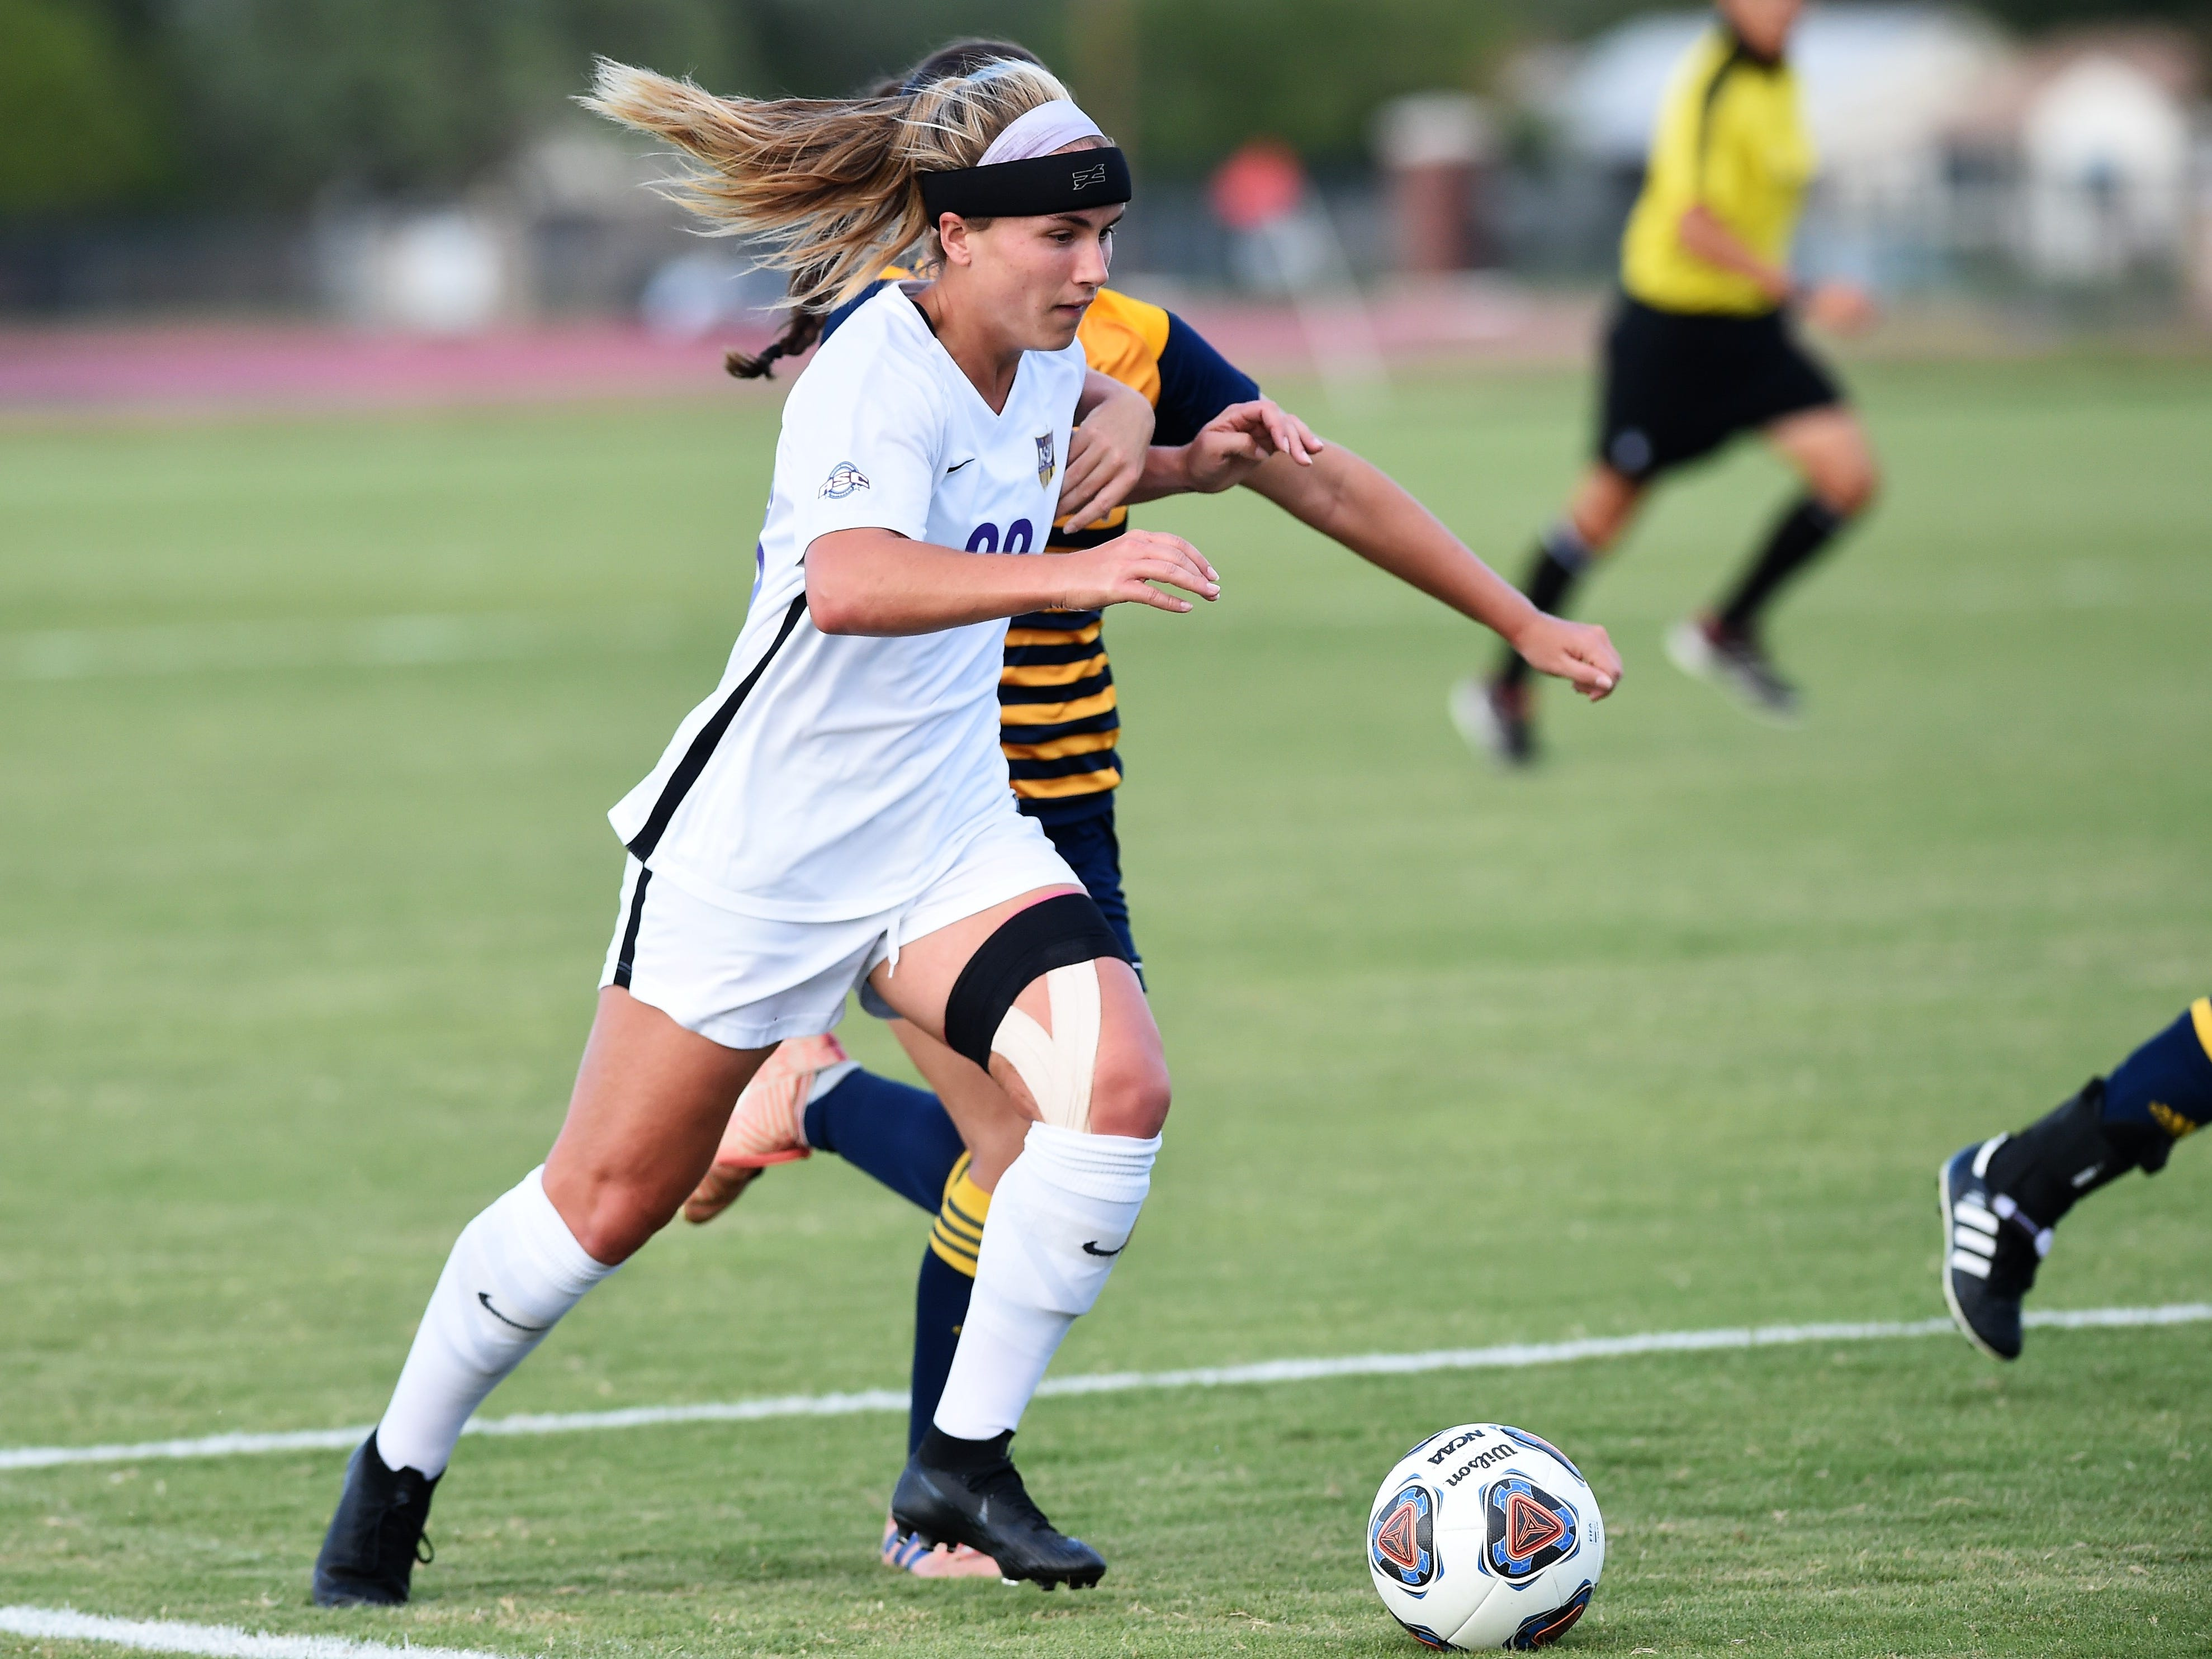 Hardin-Simmons midfielder Kenne Kessler (28) makes a move inside the box against Howard Payne at the HSU Soccer Complex on Thursday, Oct. 11, 2018. The Cowgirls won 4-1.